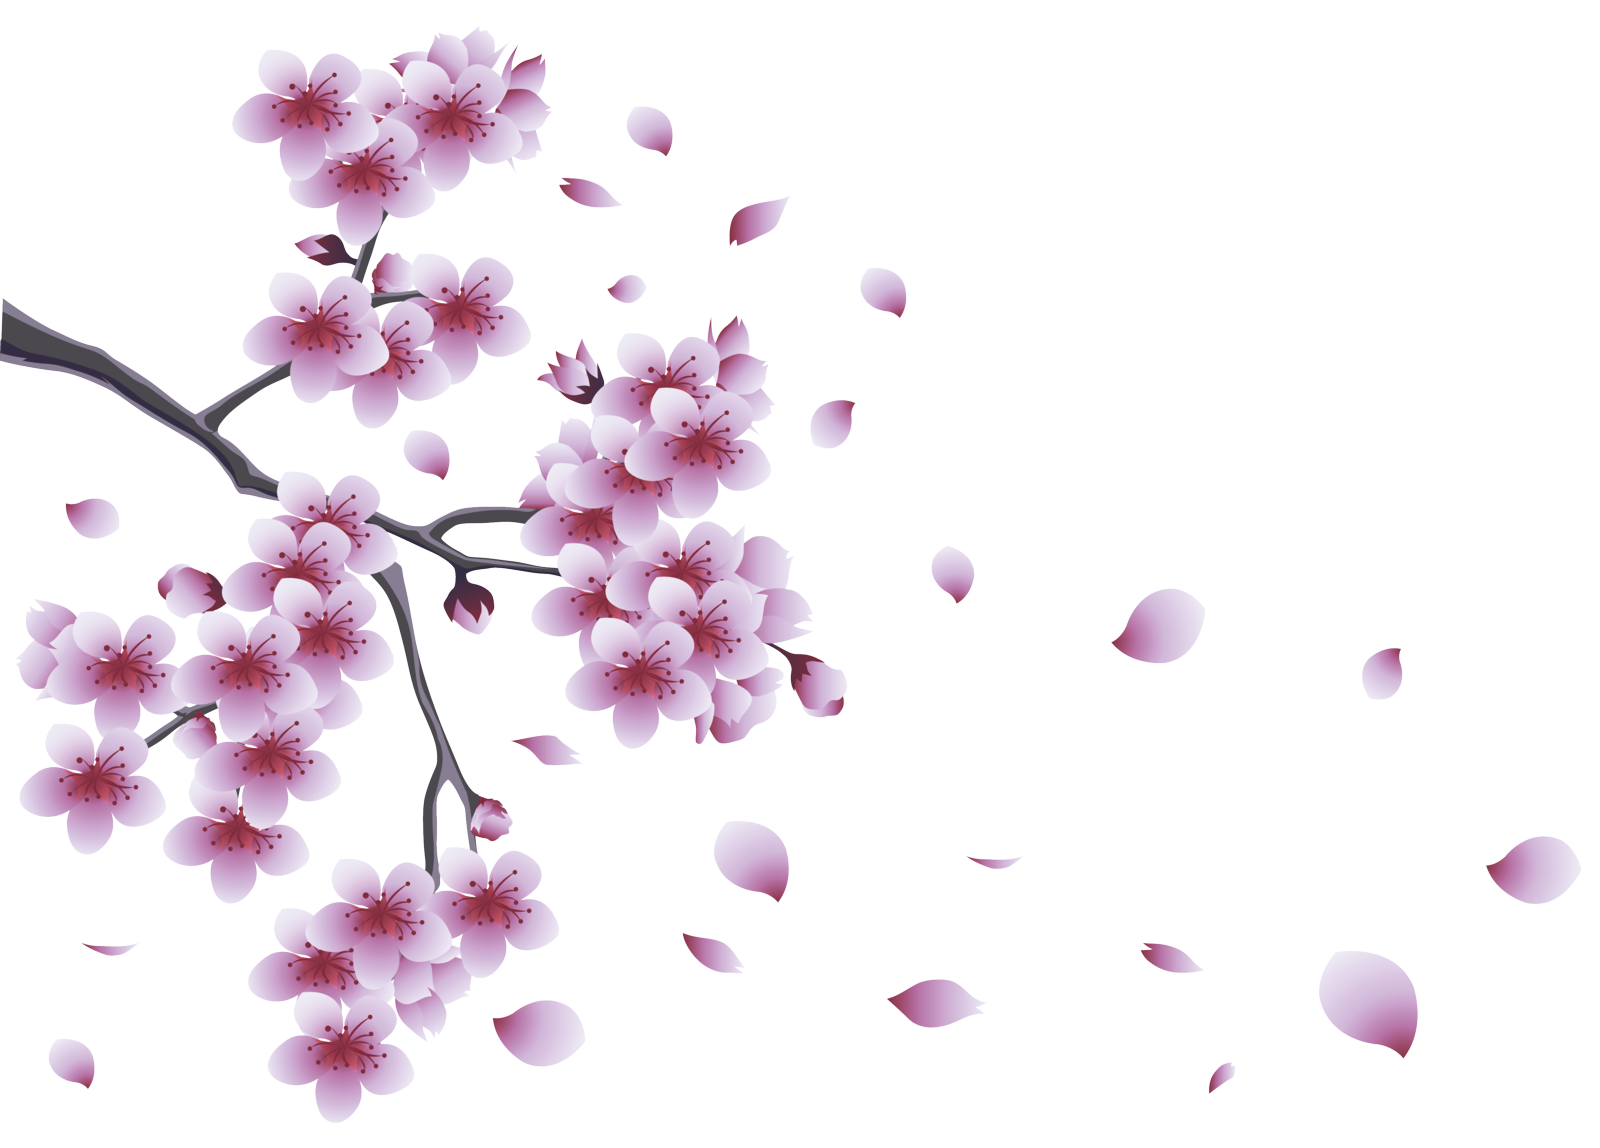 Spring png. Transparent images all pic